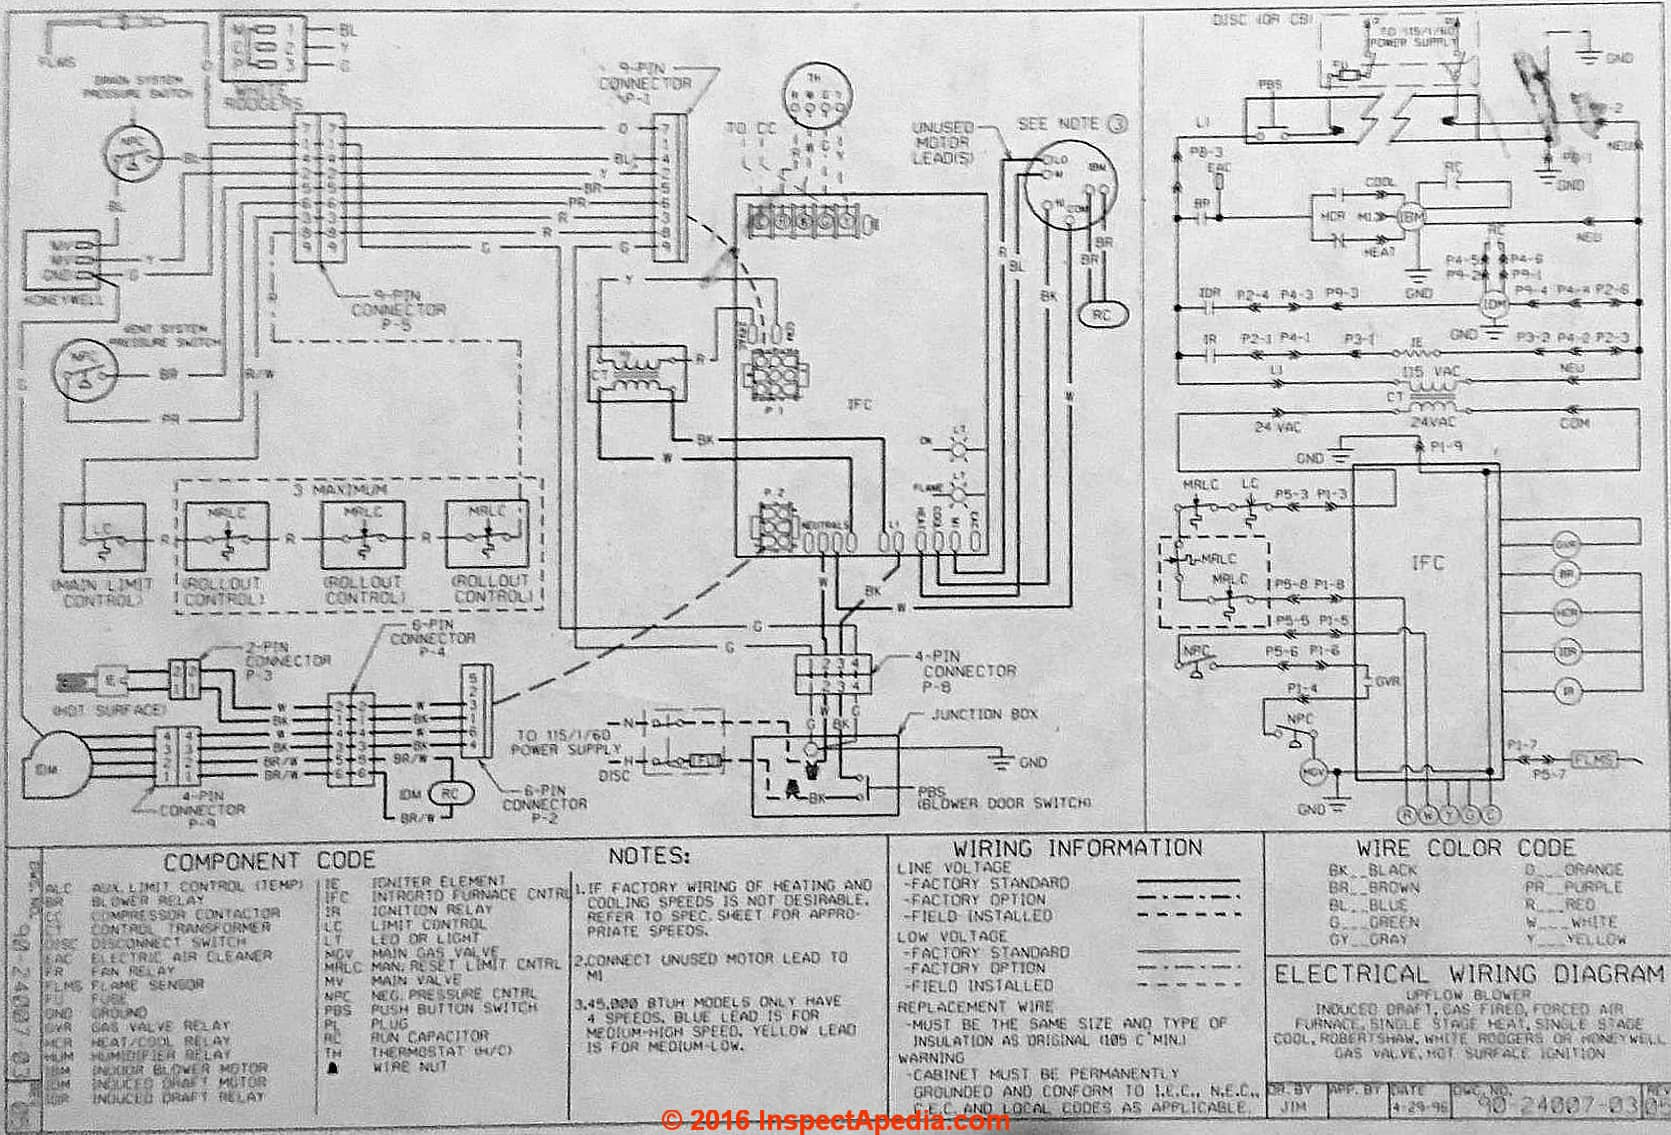 Schematic Diagram Refrigeration Cycle further Watch in addition Chilled Water Refrigeration Cycle furthermore ment 13170 together with Twinned Hvac Thermostat Wiring Goodman Furnaces. on york heat pump wiring diagram